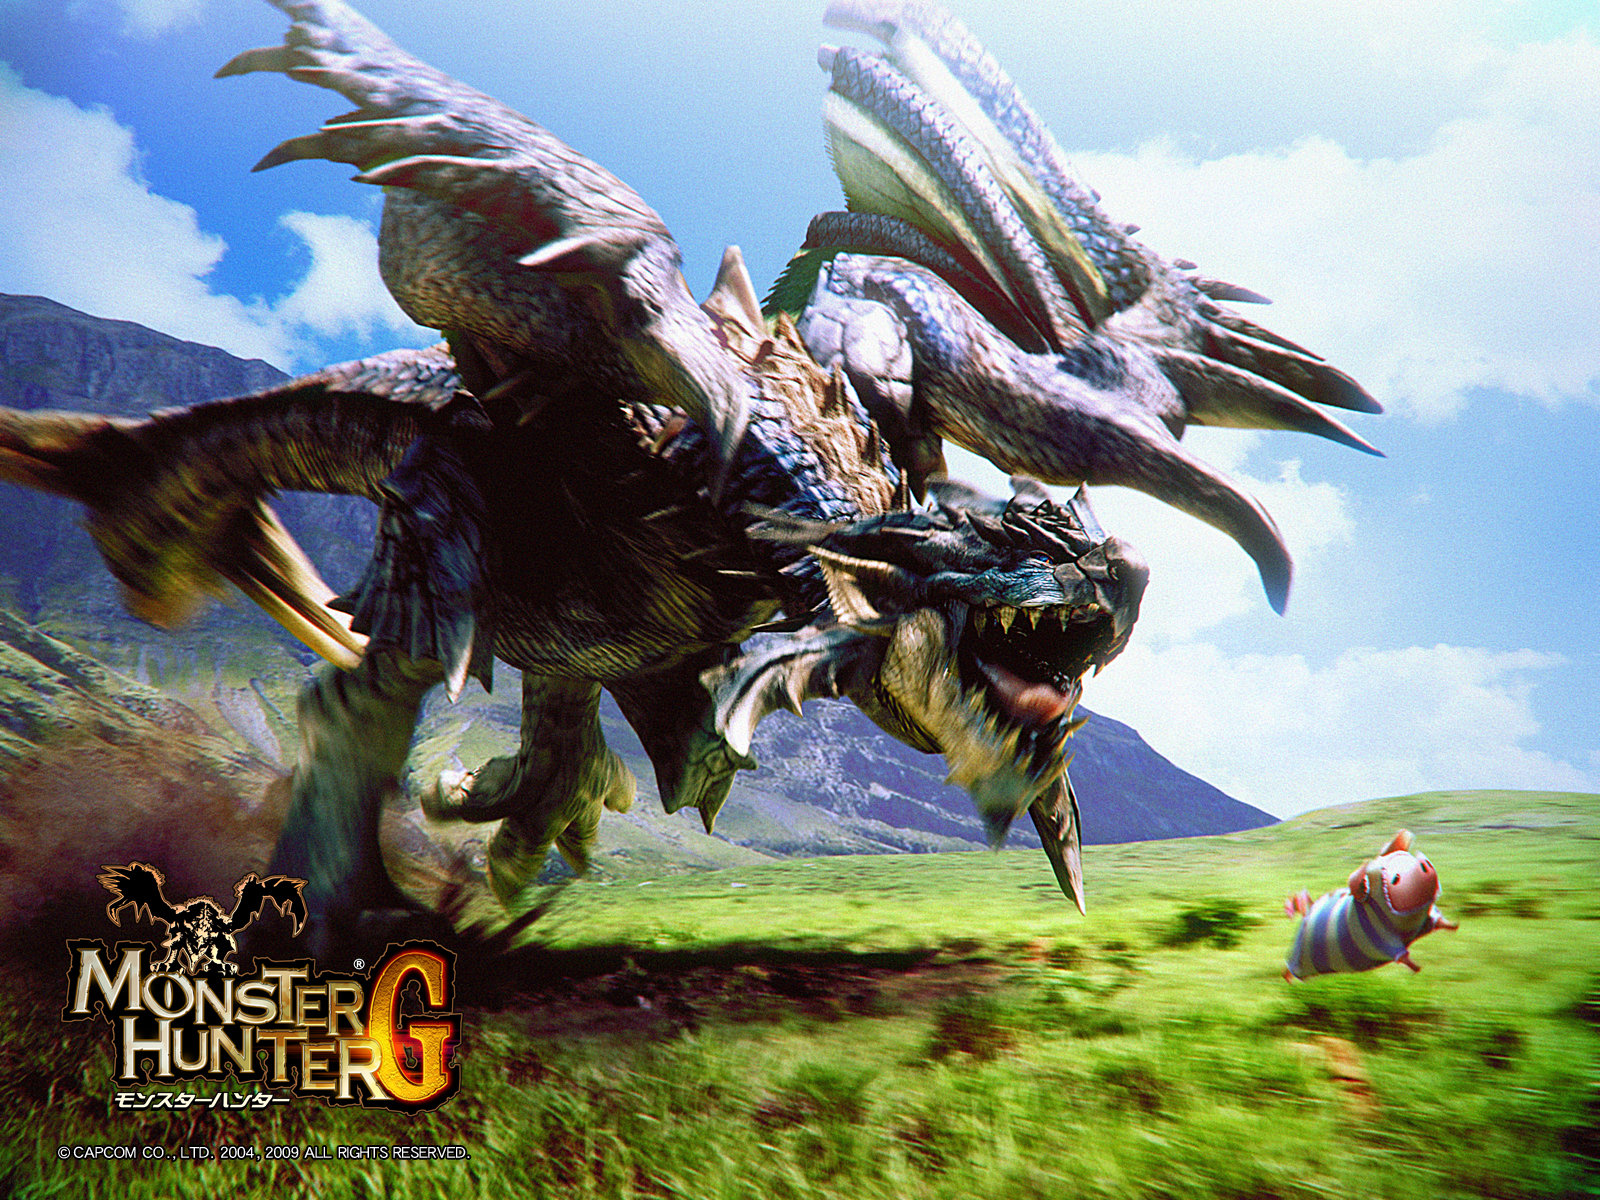 Monster Hunter HD Wallpapers